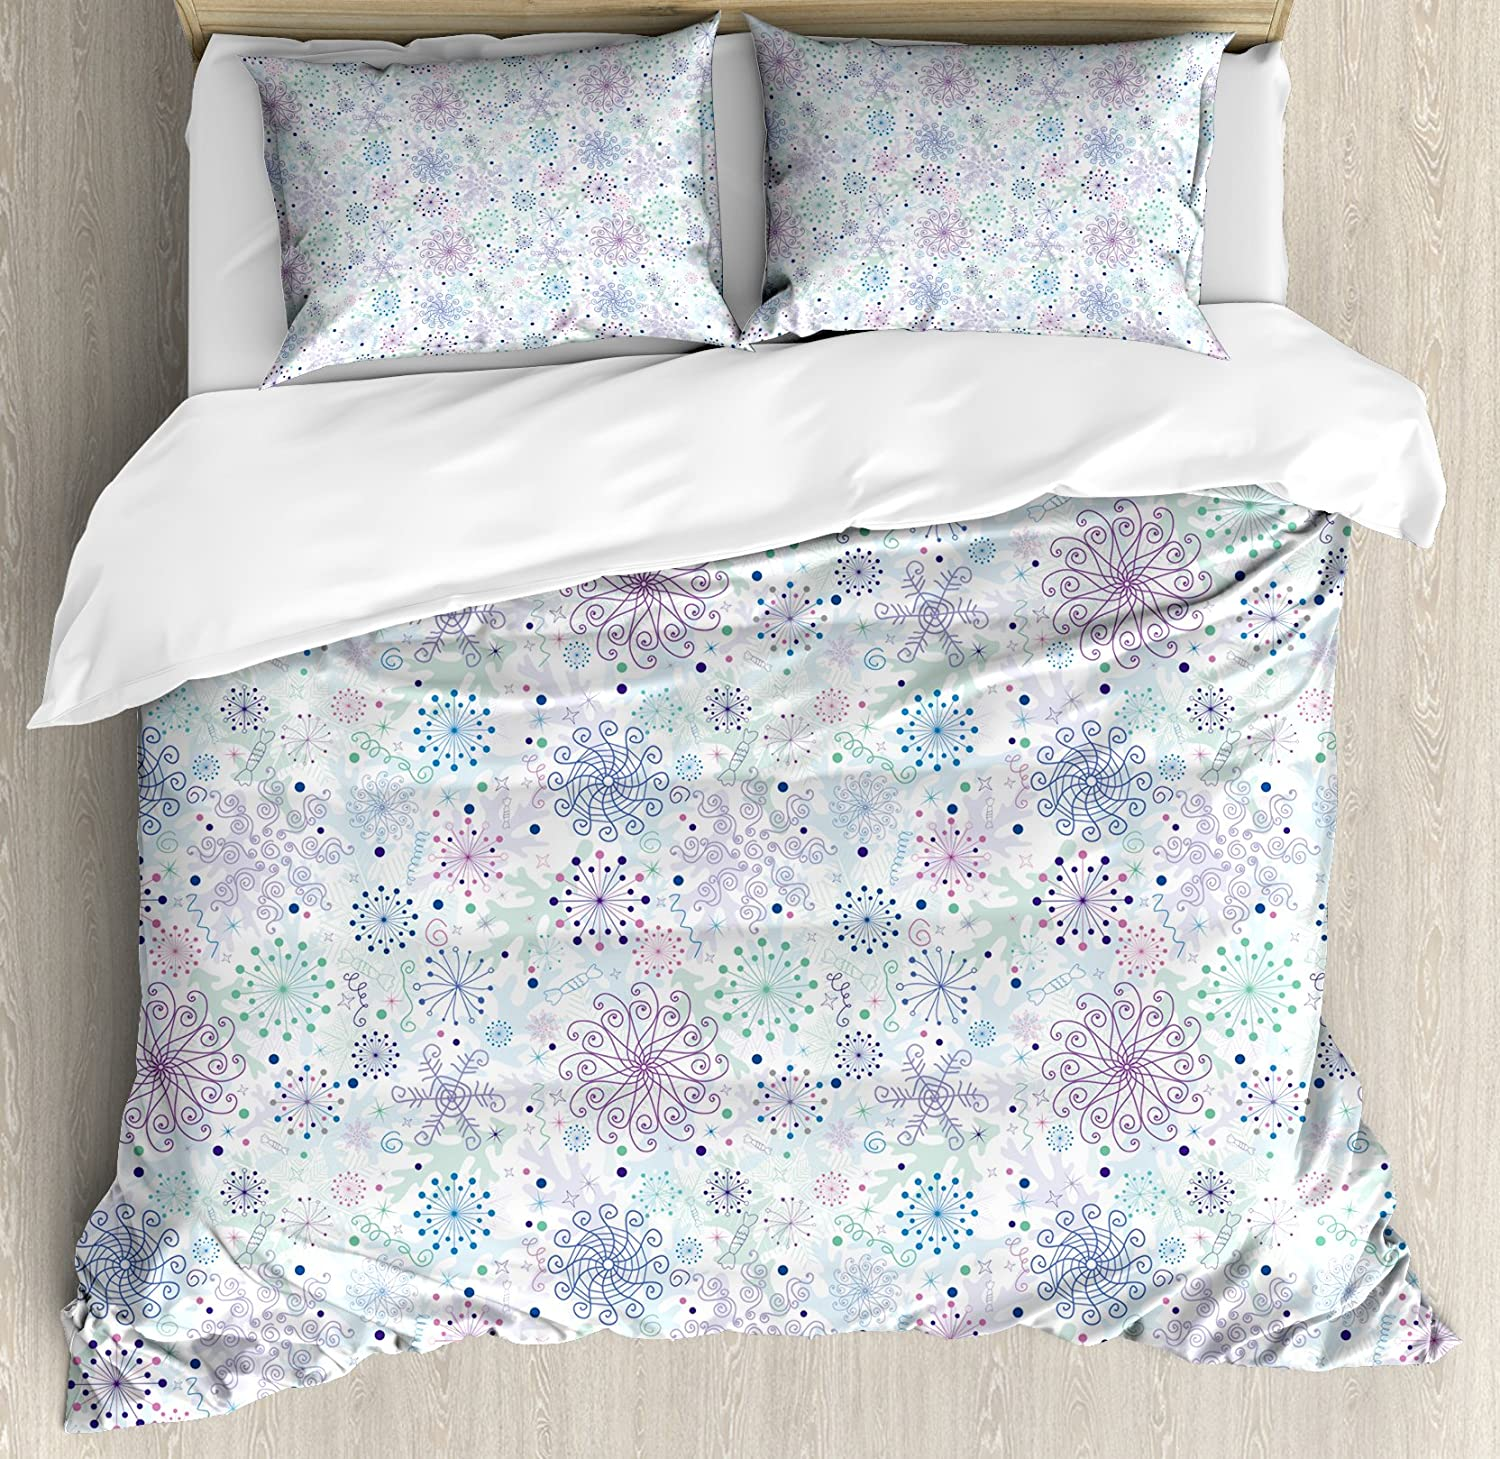 nev/_44945/_queen Pattern with Ornate Snowflake Motifs and Dots Retro Christmas Inspired Repetitive Ambesonne Winter Duvet Cover Set Queen Size Decorative 3 Piece Bedding Set with 2 Pillow Shams